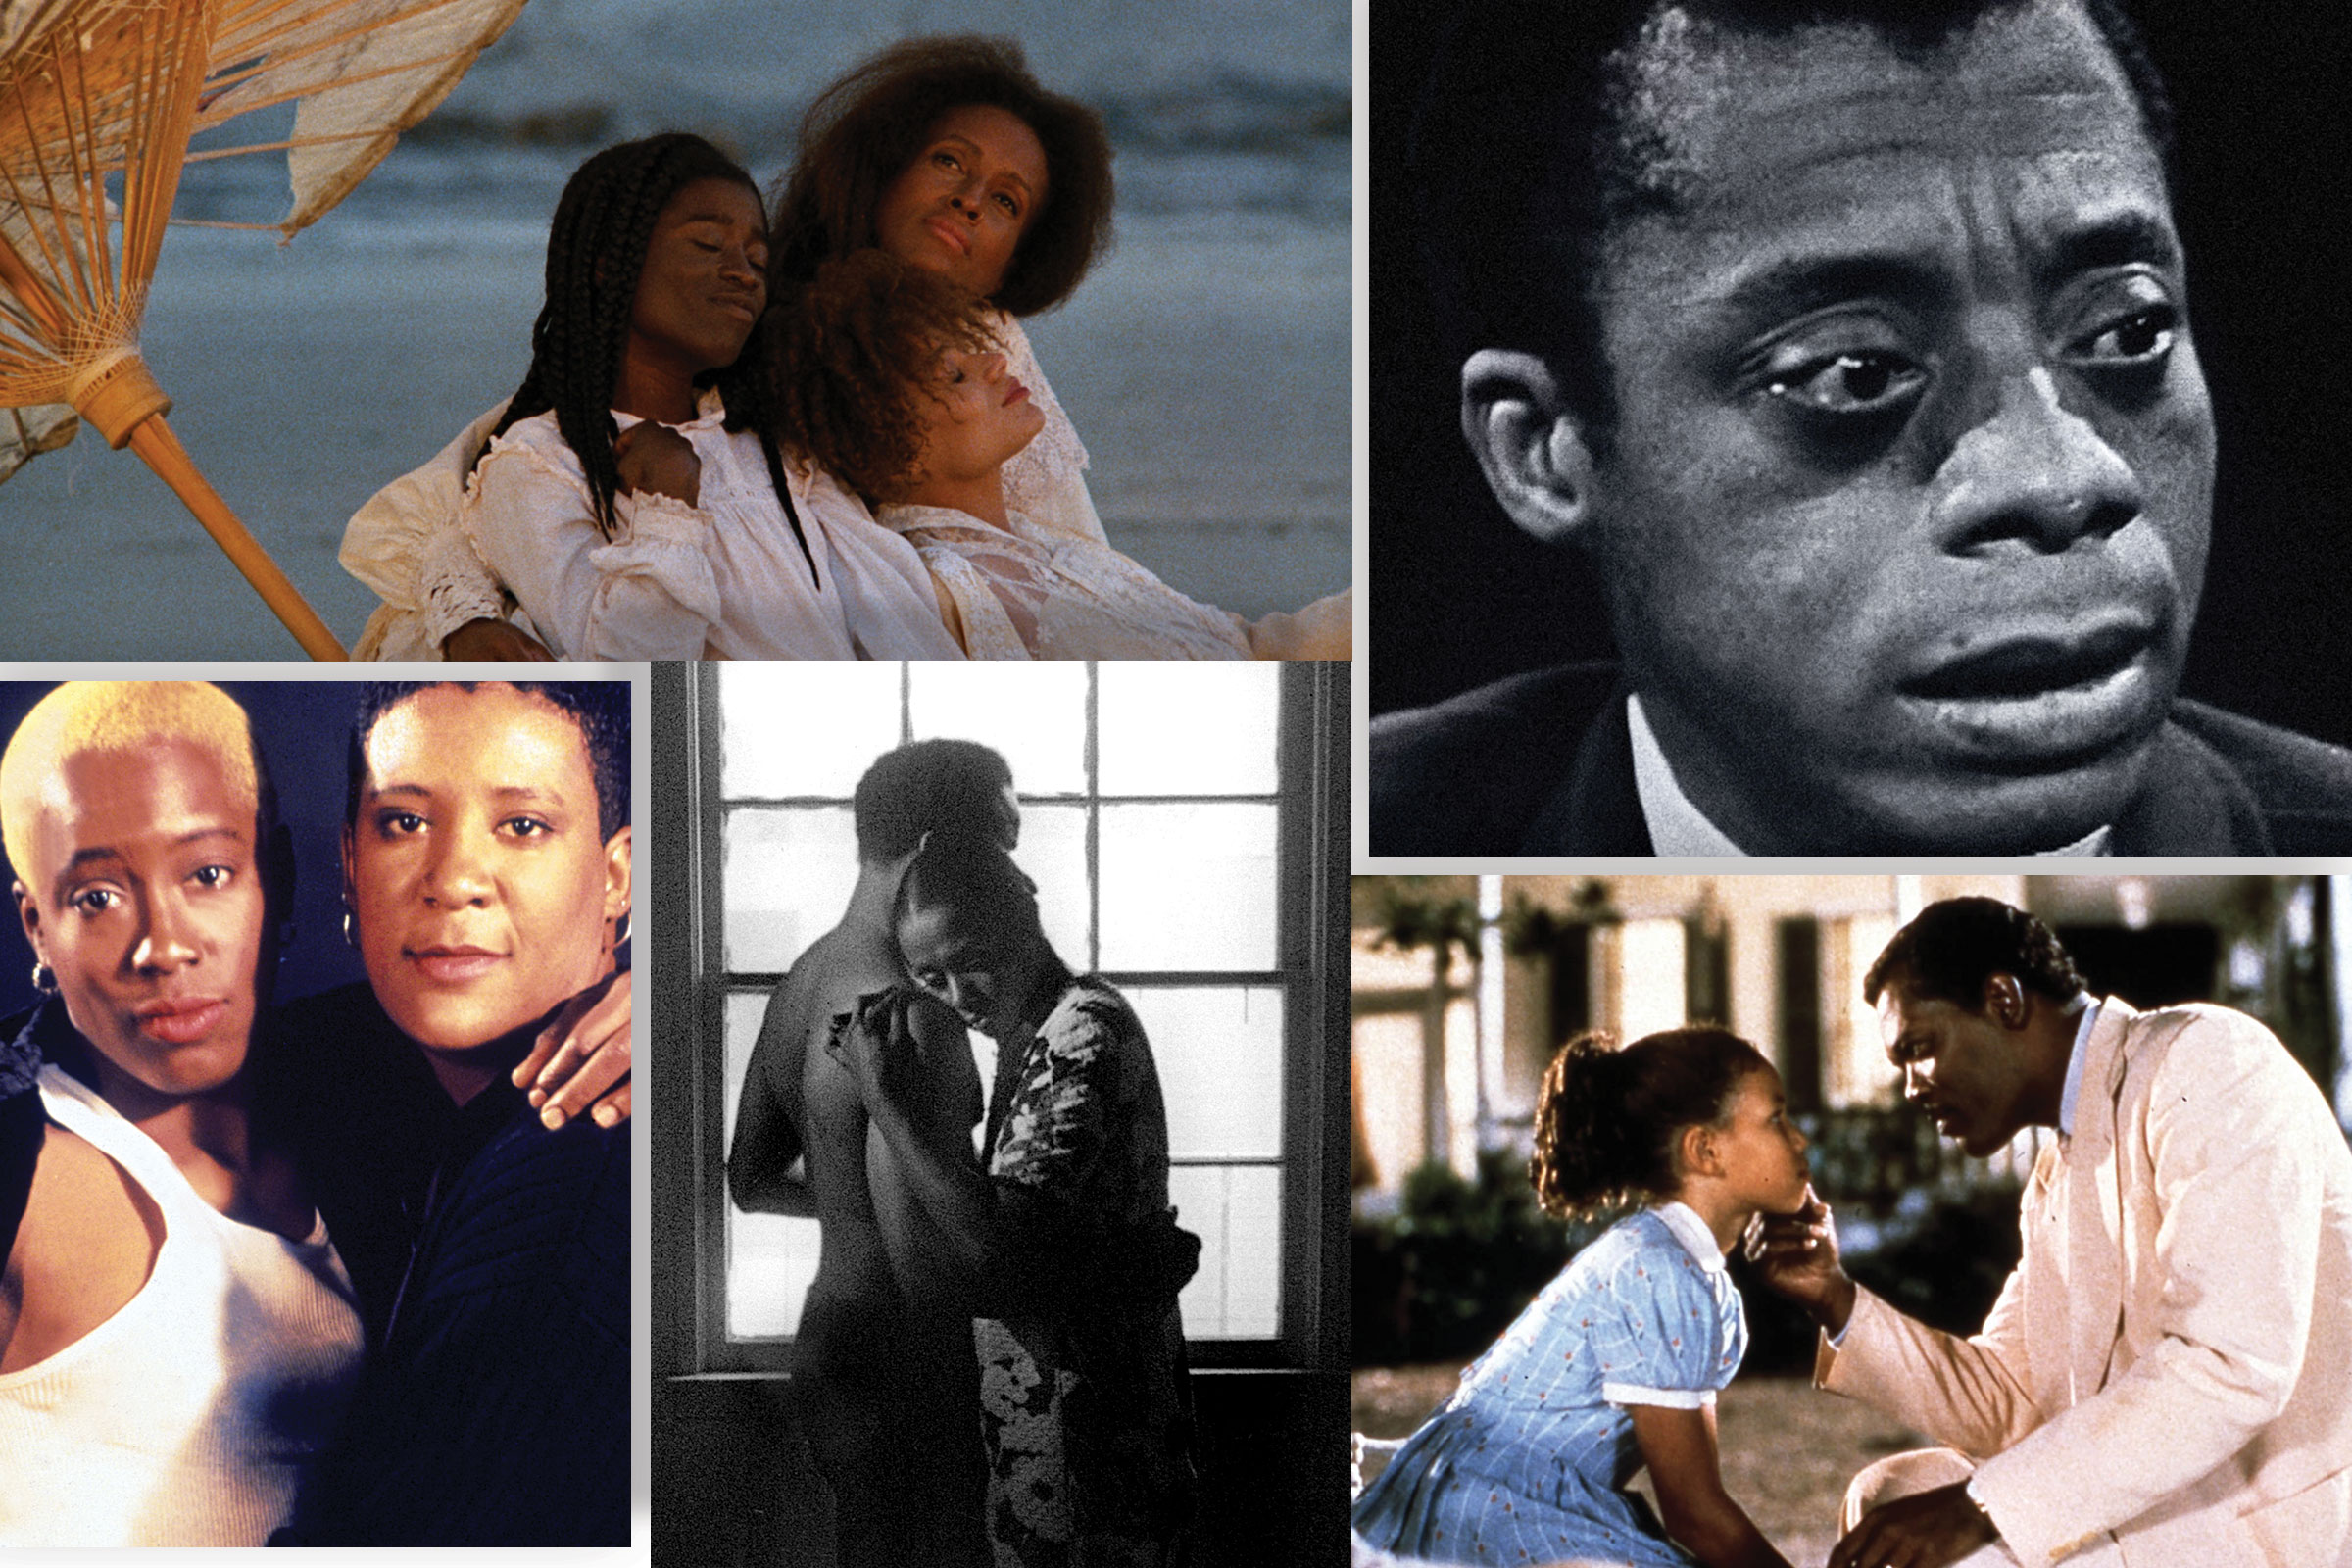 Clockwise from top left: Daughters of the Dust, I Am Not Your Negro, Eve's Bayou, Killer of Sheep, The Watermelon Woman